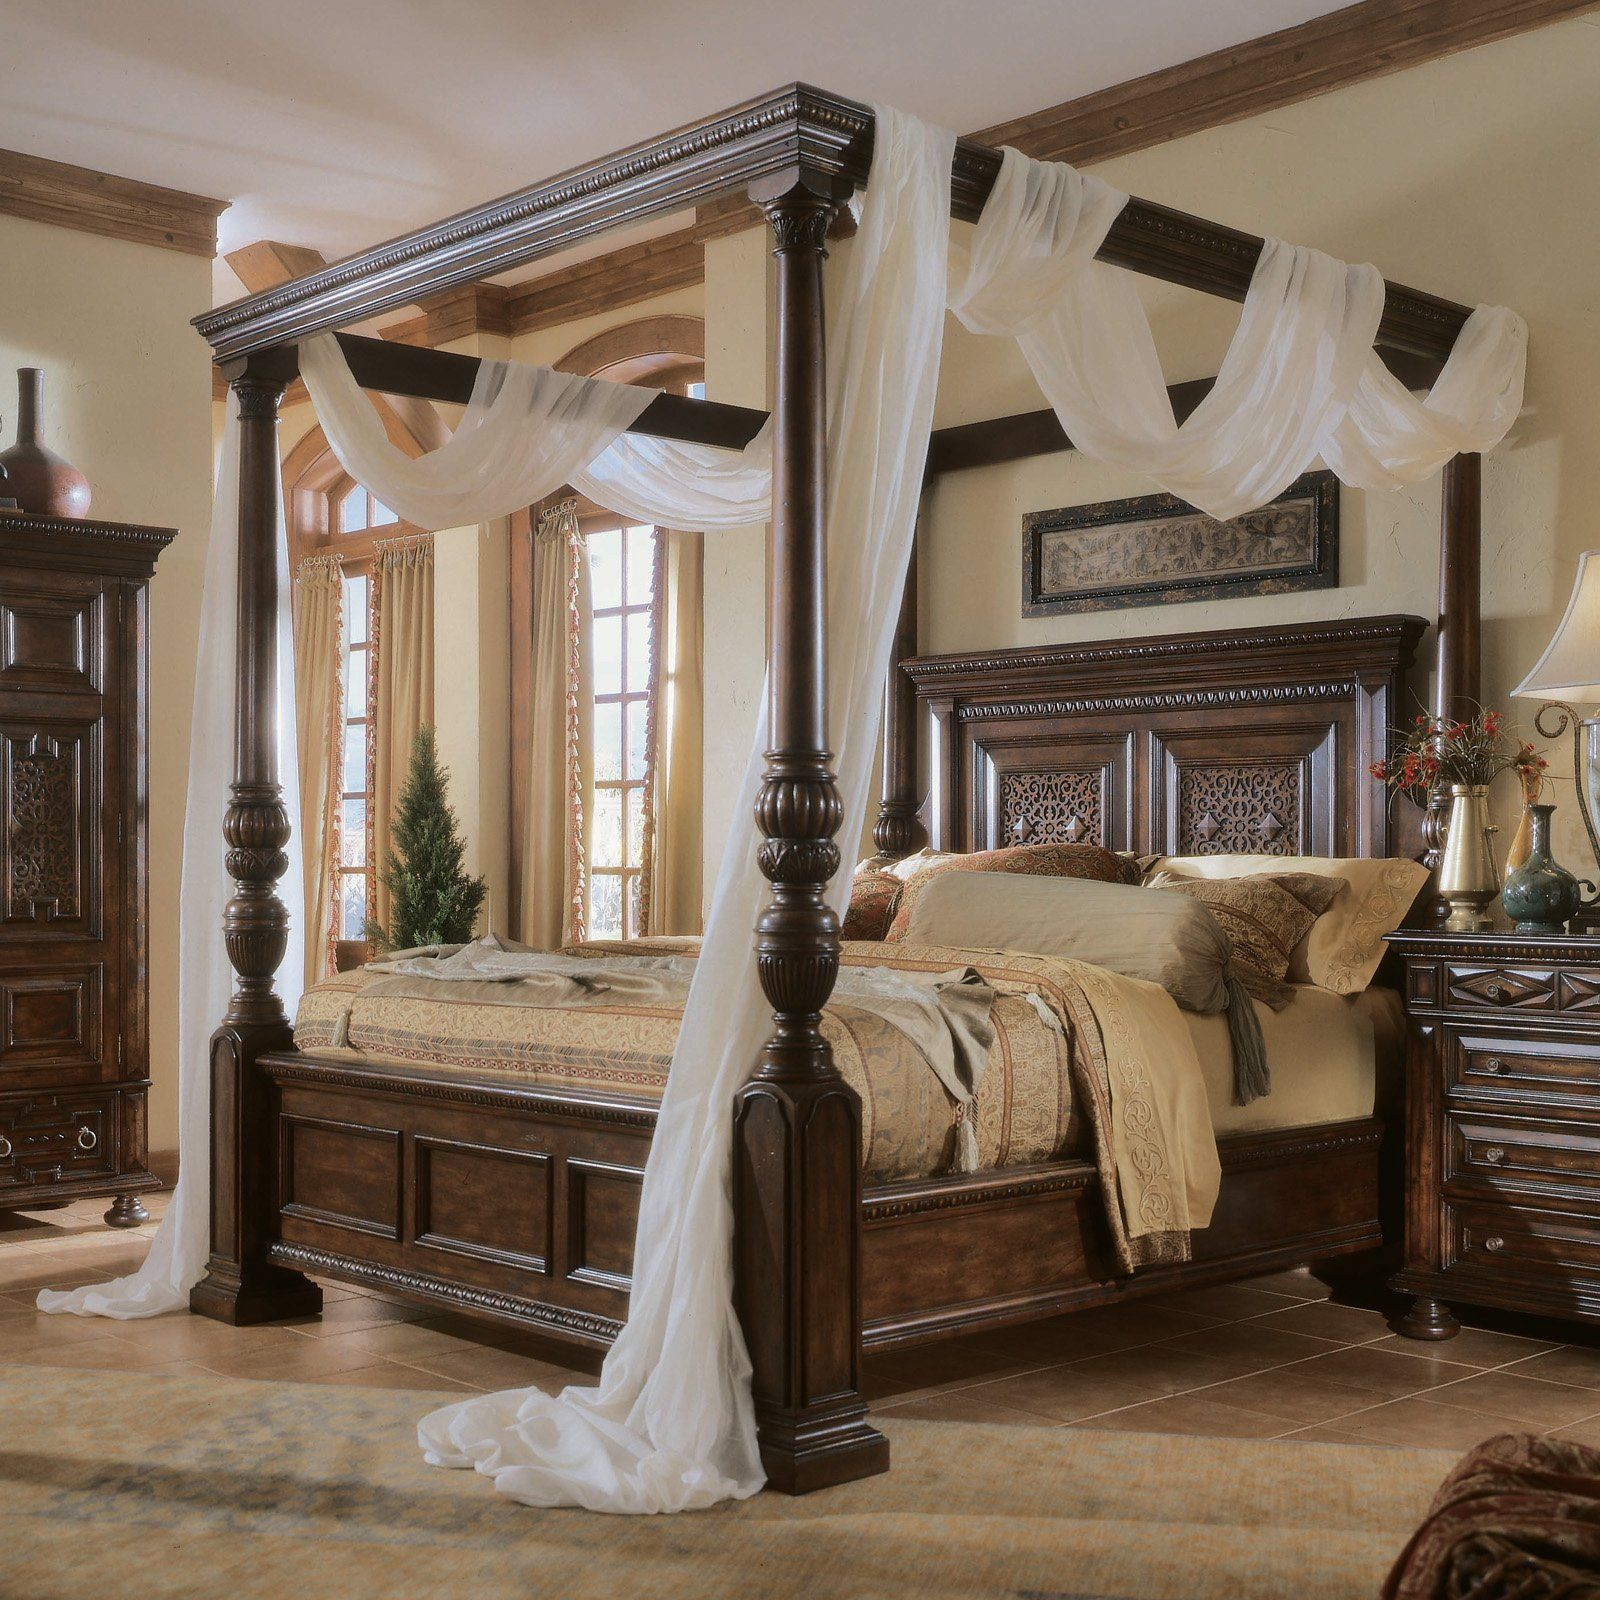 15 Most Beautiful Decorated And Designed Beds | Canopy and Damask ...